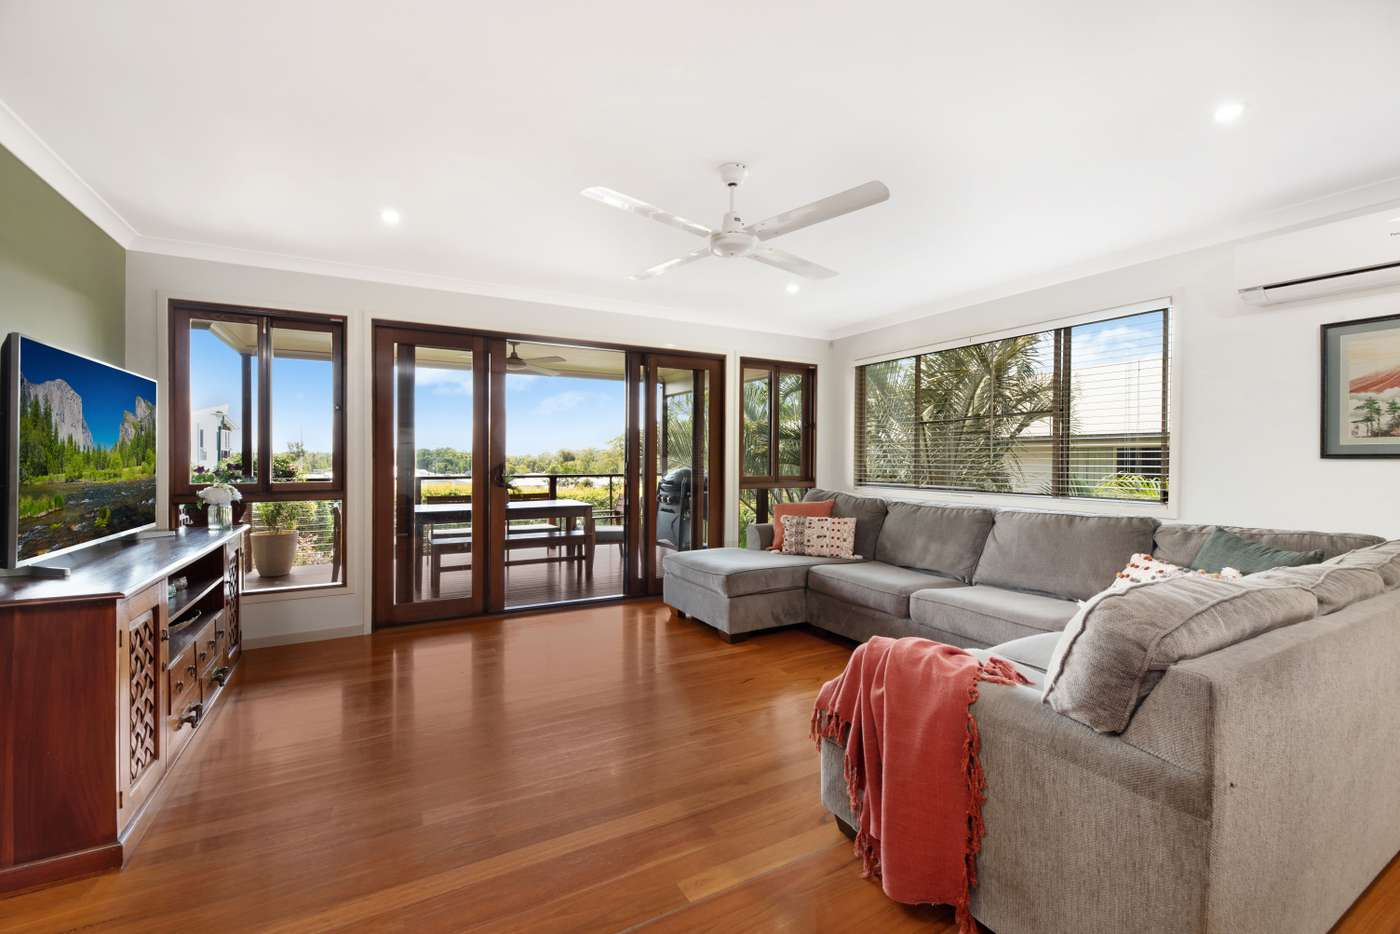 Fifth view of Homely house listing, 6 Greensboro Place, Little Mountain QLD 4551